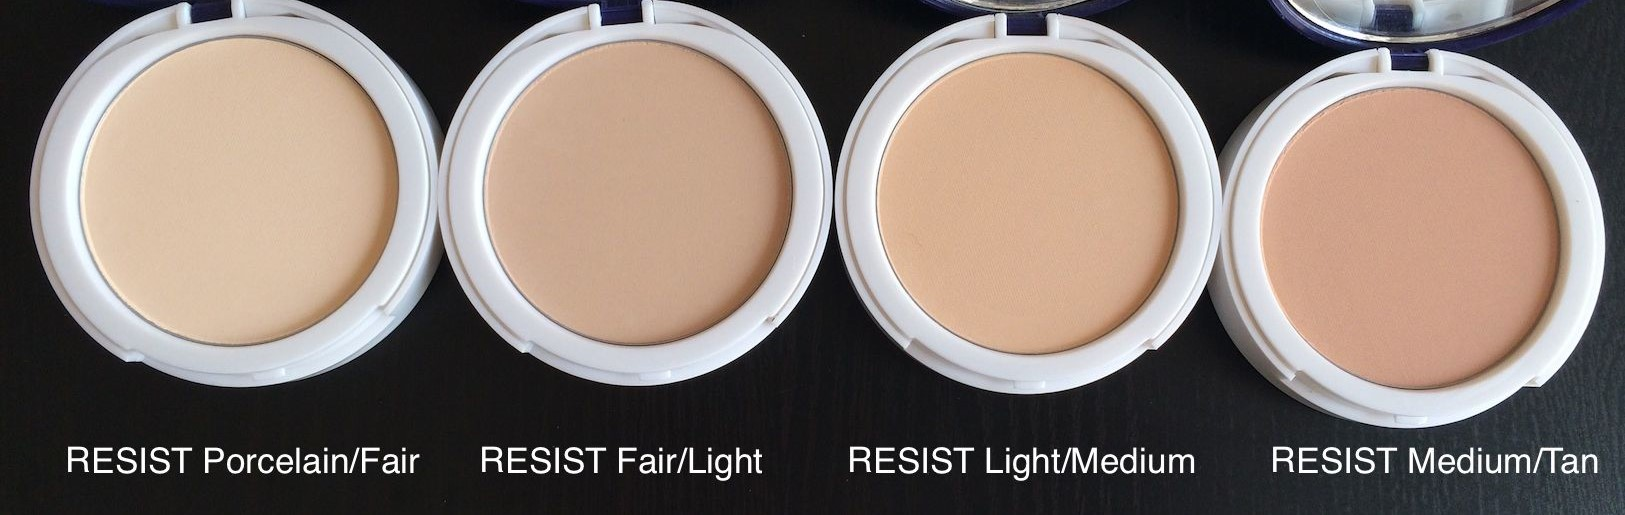 Phấn Phủ Siêu Mịn Resist Instant Smoothing Satin Finish Powder 91600